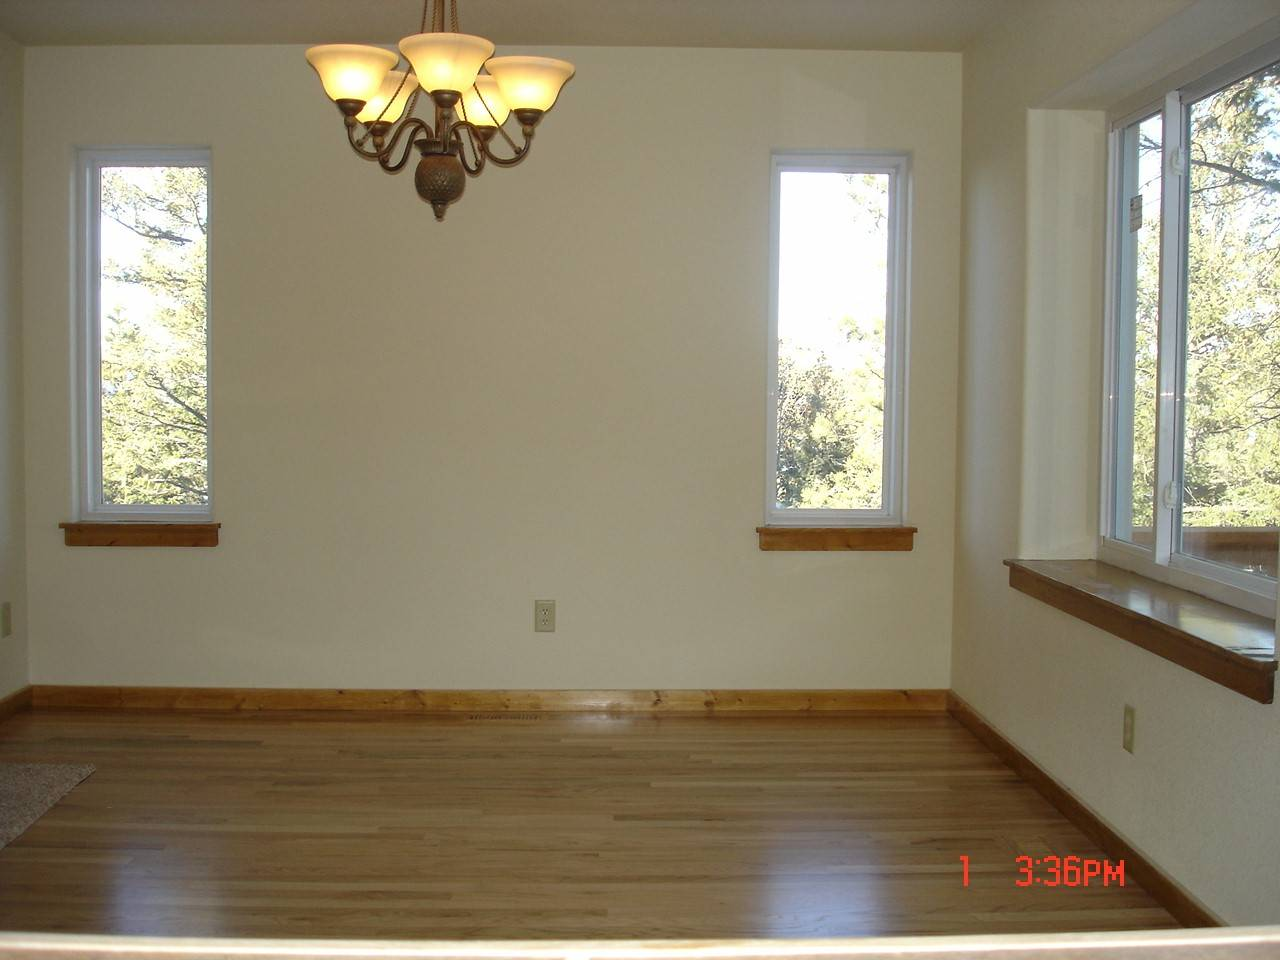 Bay windows, custom lighting, and hardwood floors